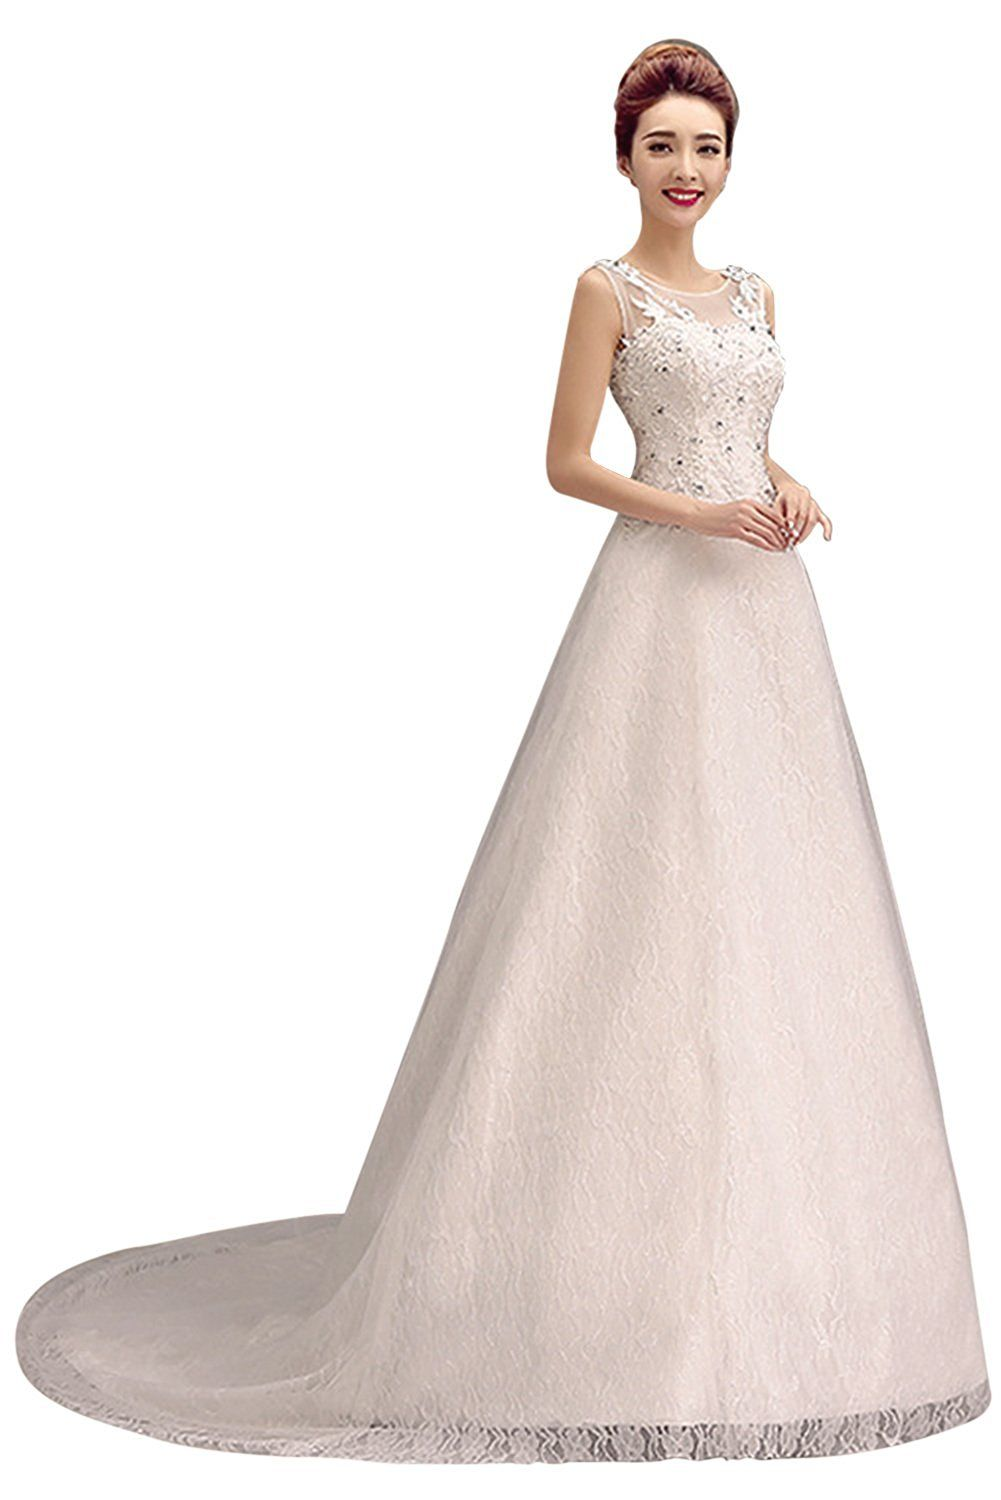 Pin by gladys perez on womens clothing pinterest wedding party